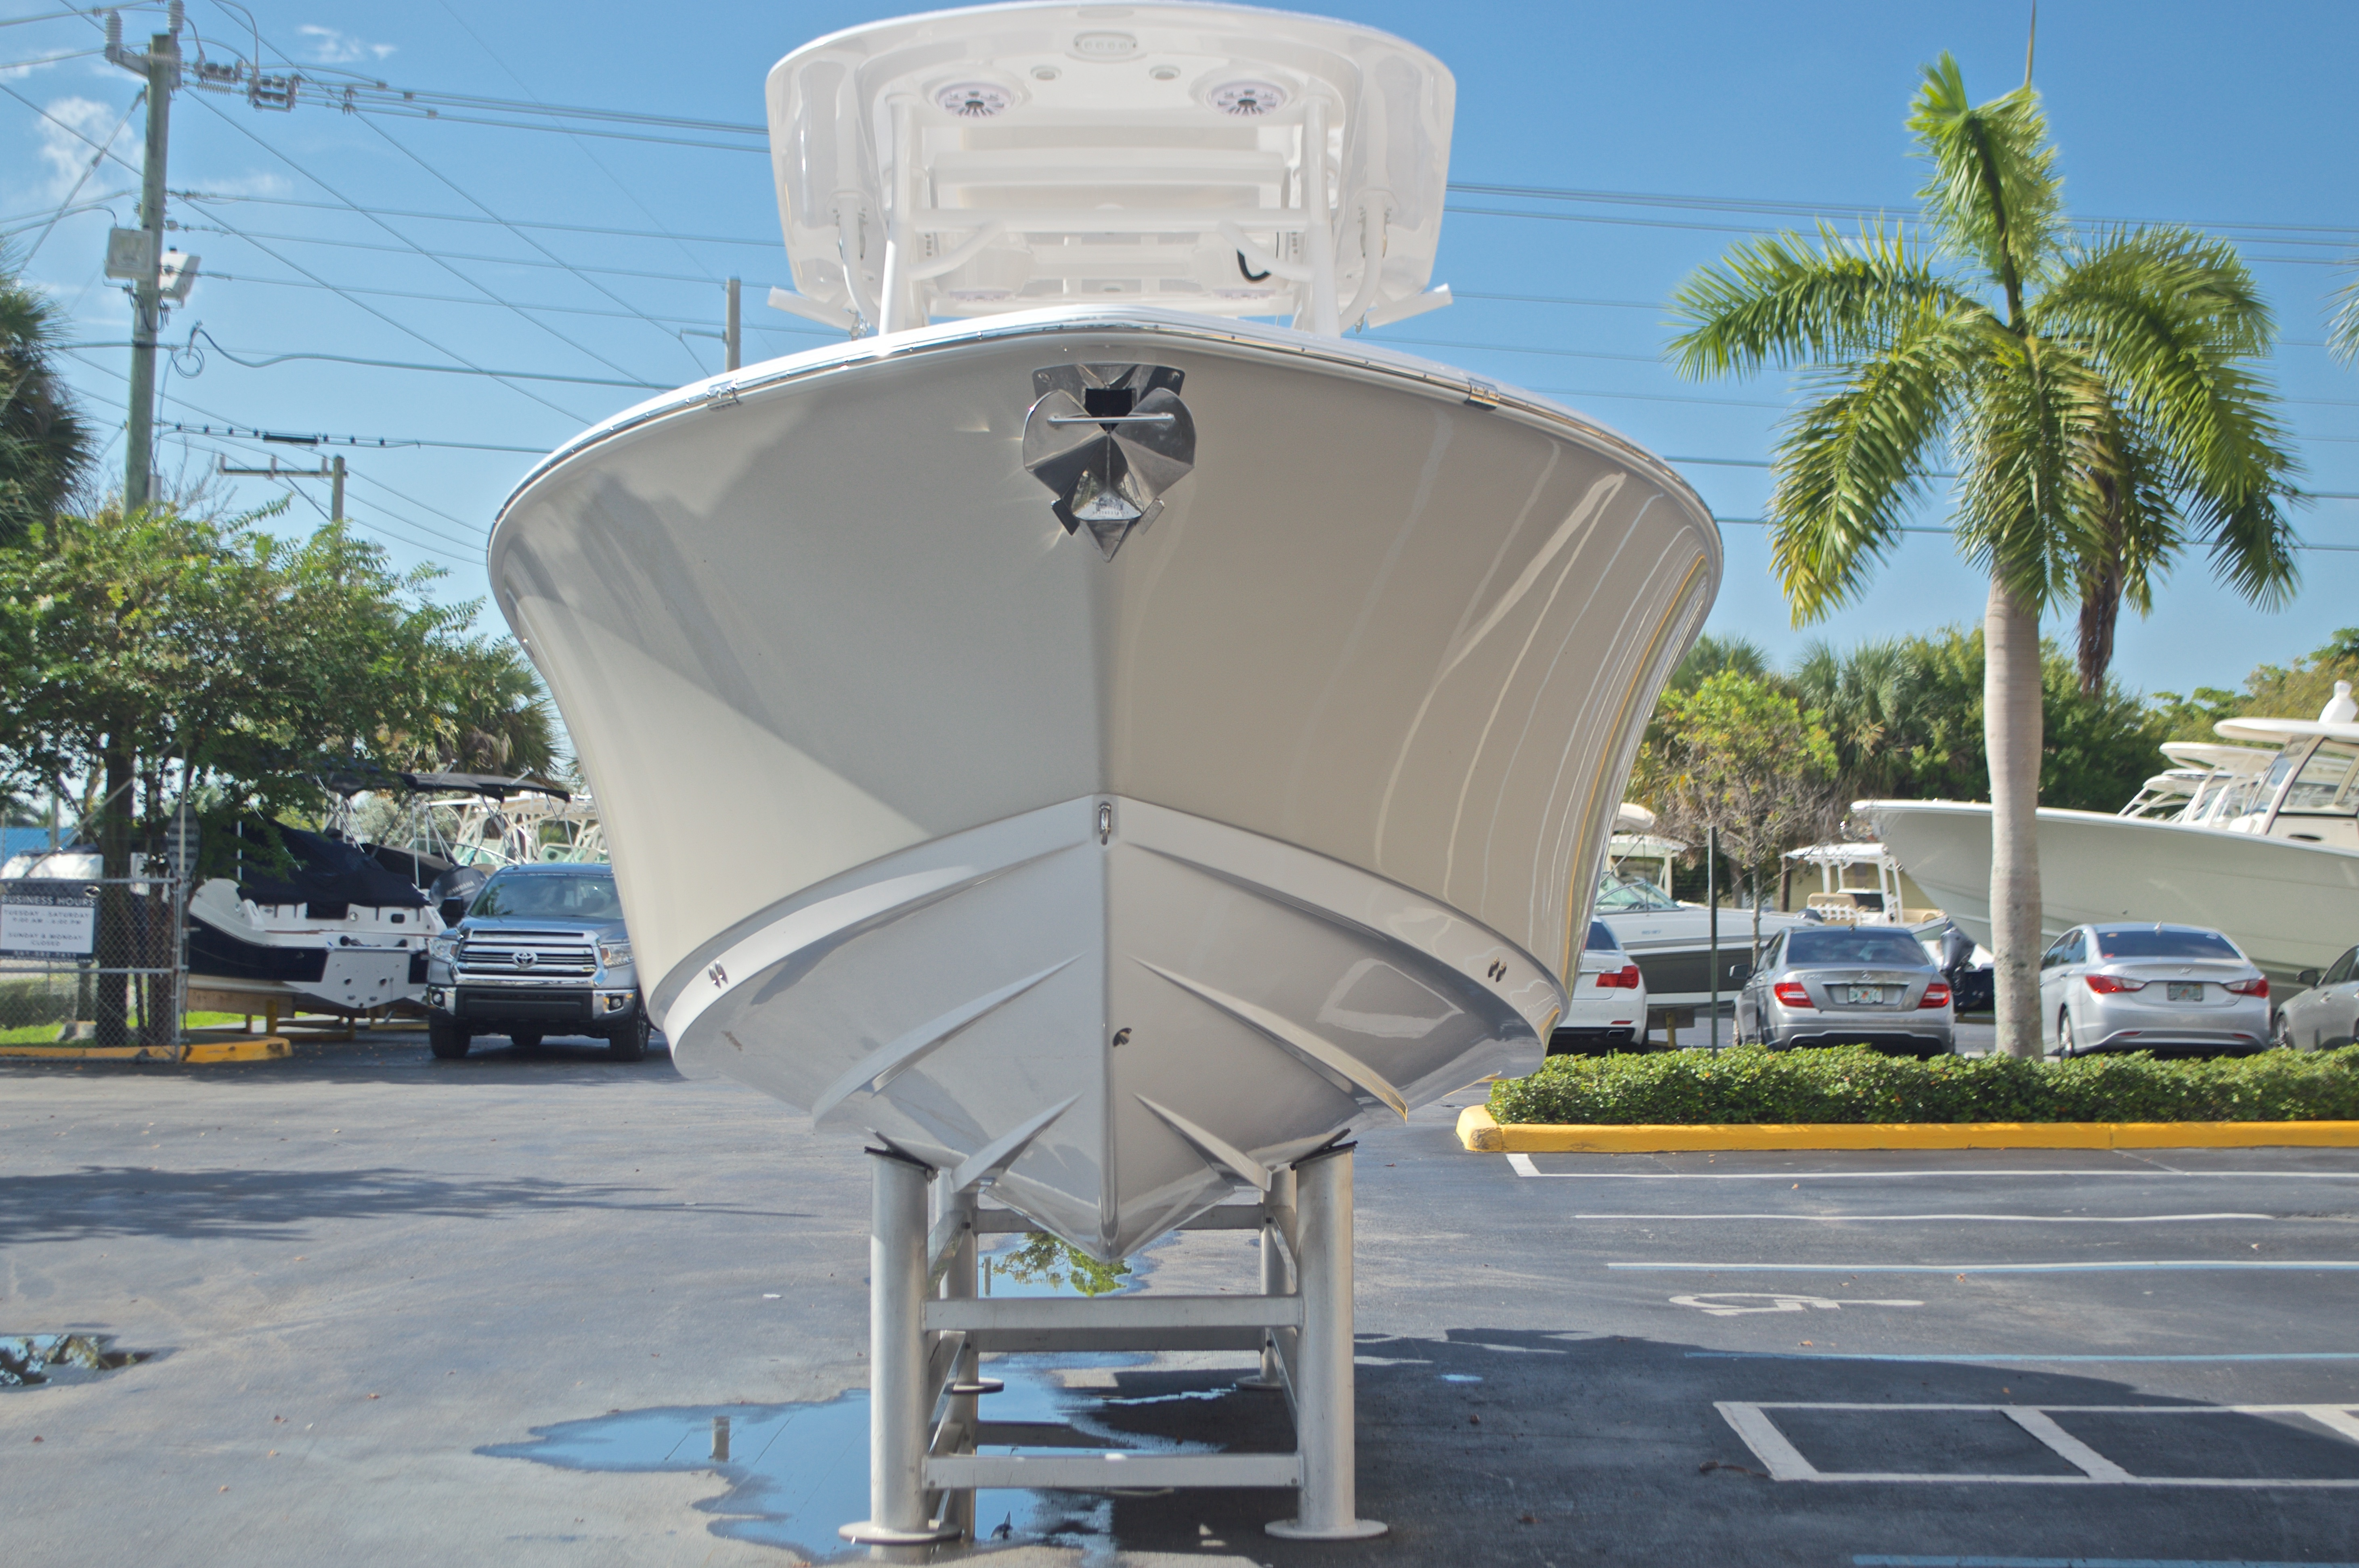 Thumbnail 2 for New 2017 Sportsman Open 252 Center Console boat for sale in Vero Beach, FL